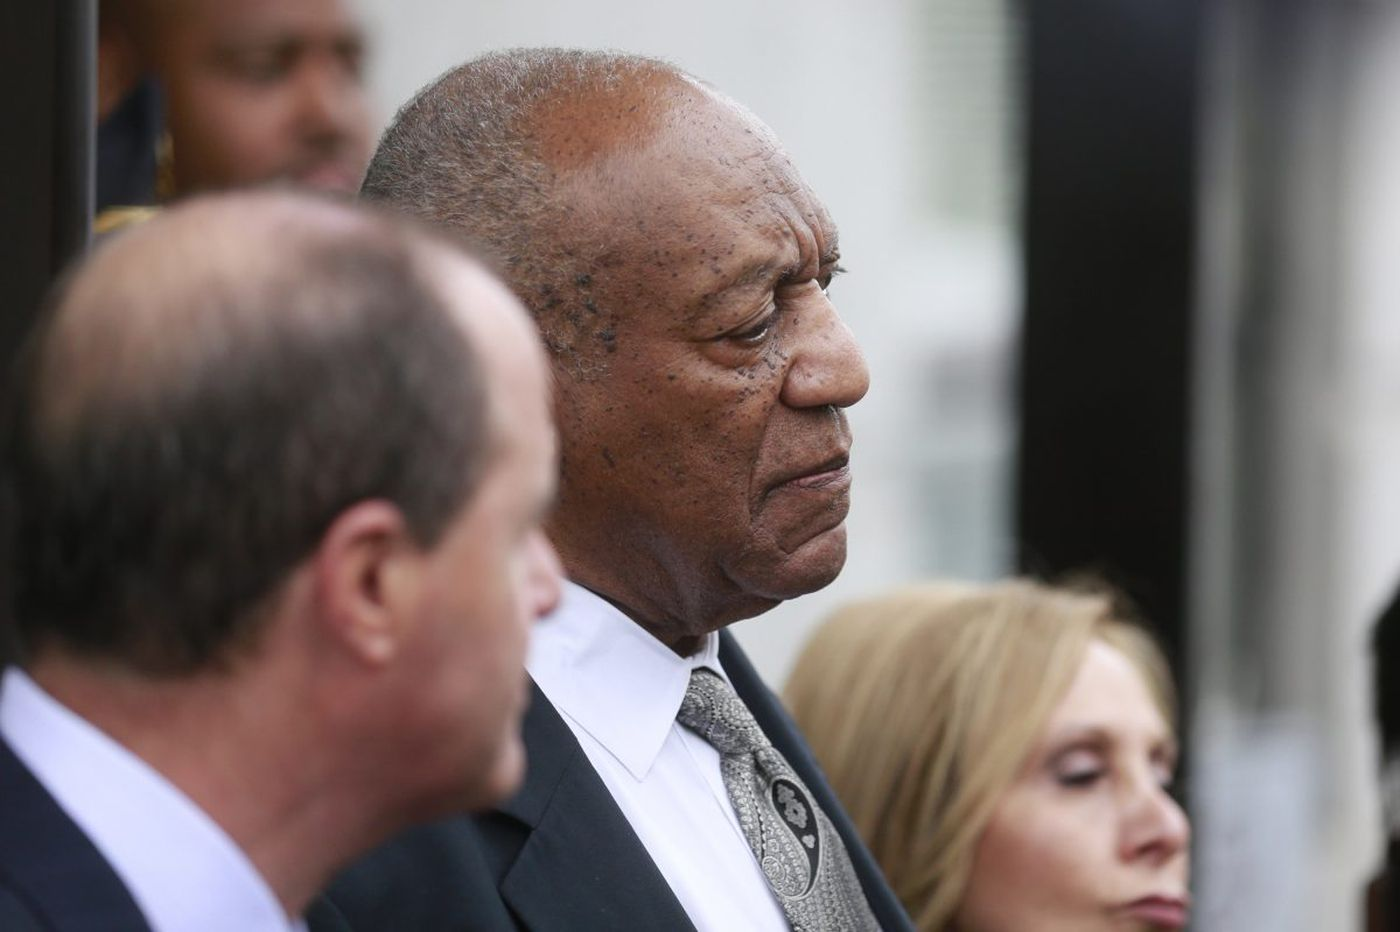 Report: 10 of 12 Cosby jurors wanted to convict